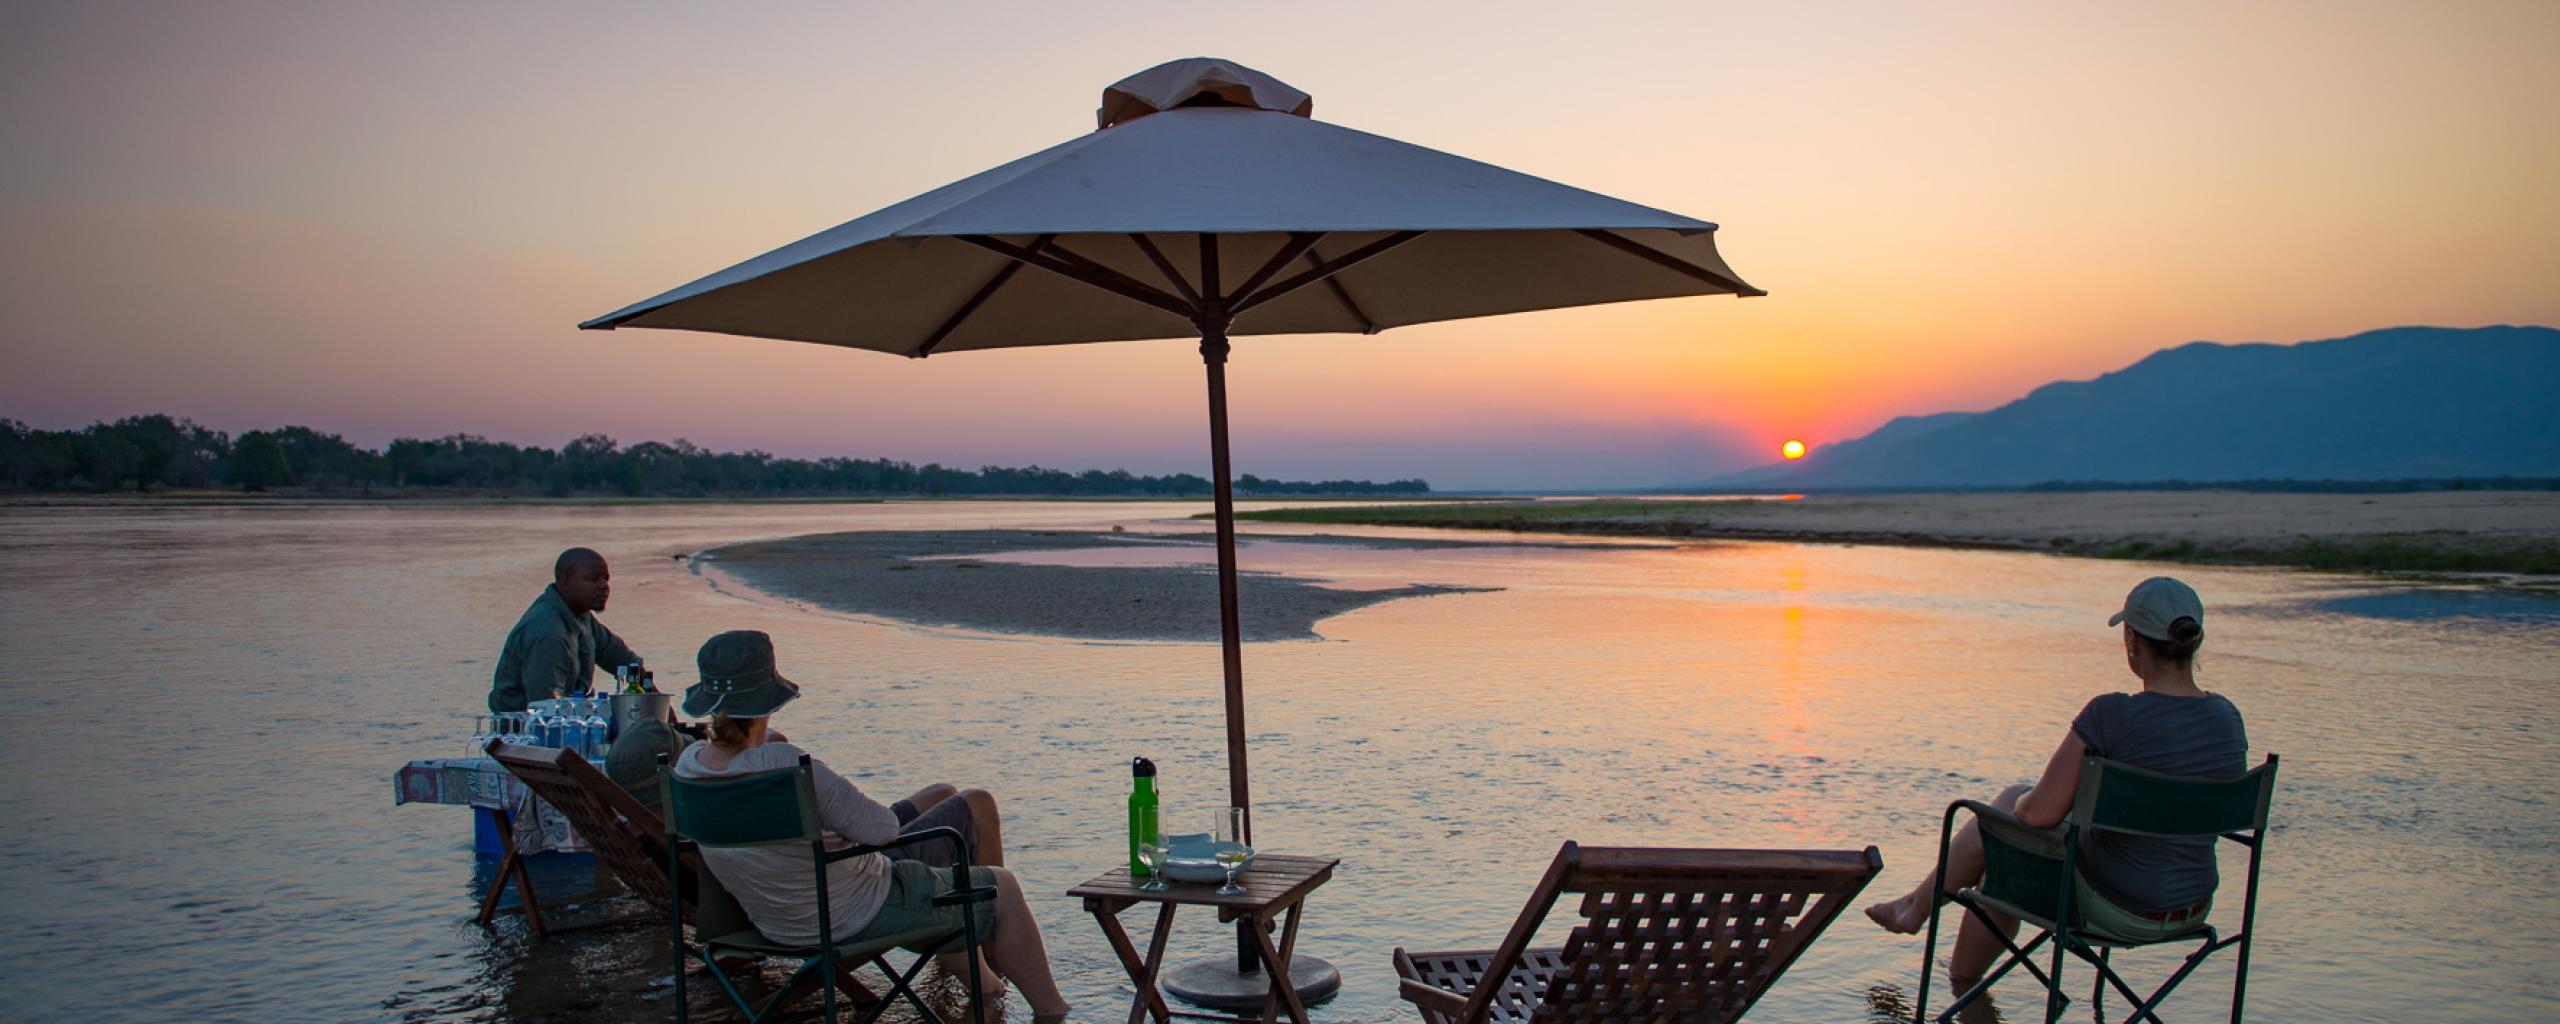 Zambezi Expeditions - Zambezi River